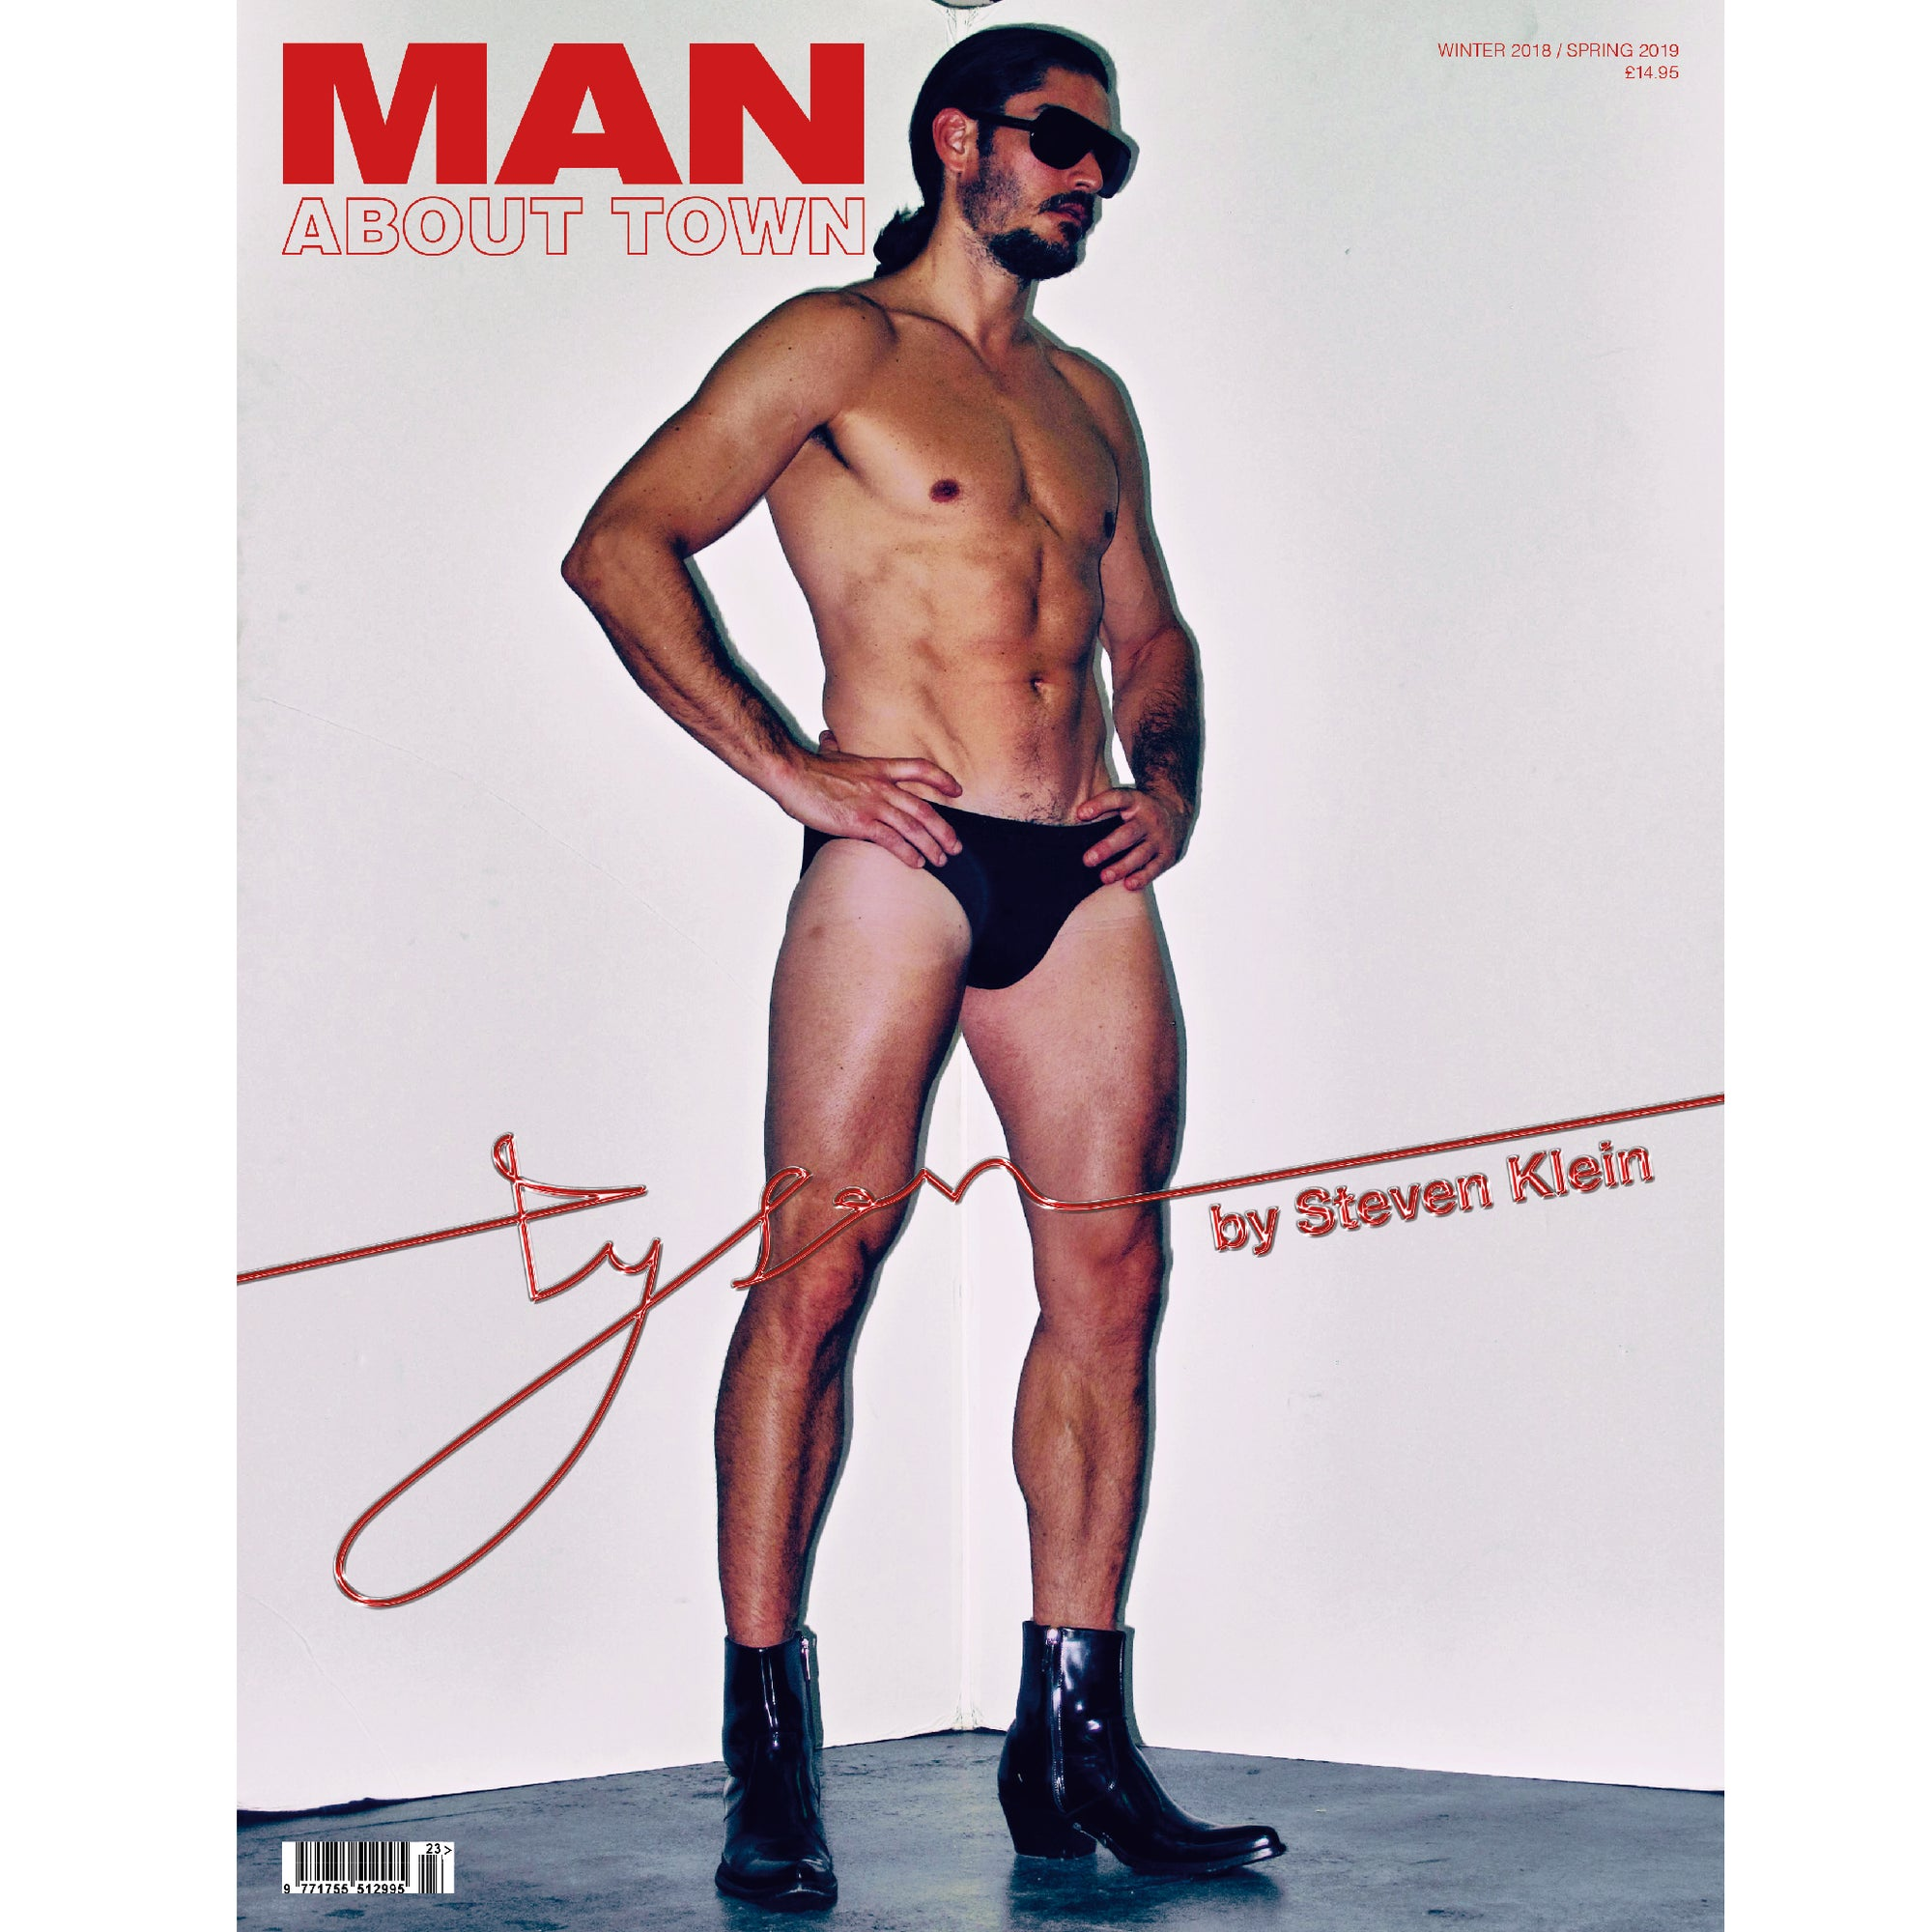 STEVEN KLEIN - TYSON - Man About Town Winter 2018 / Spring 2019 Magazine